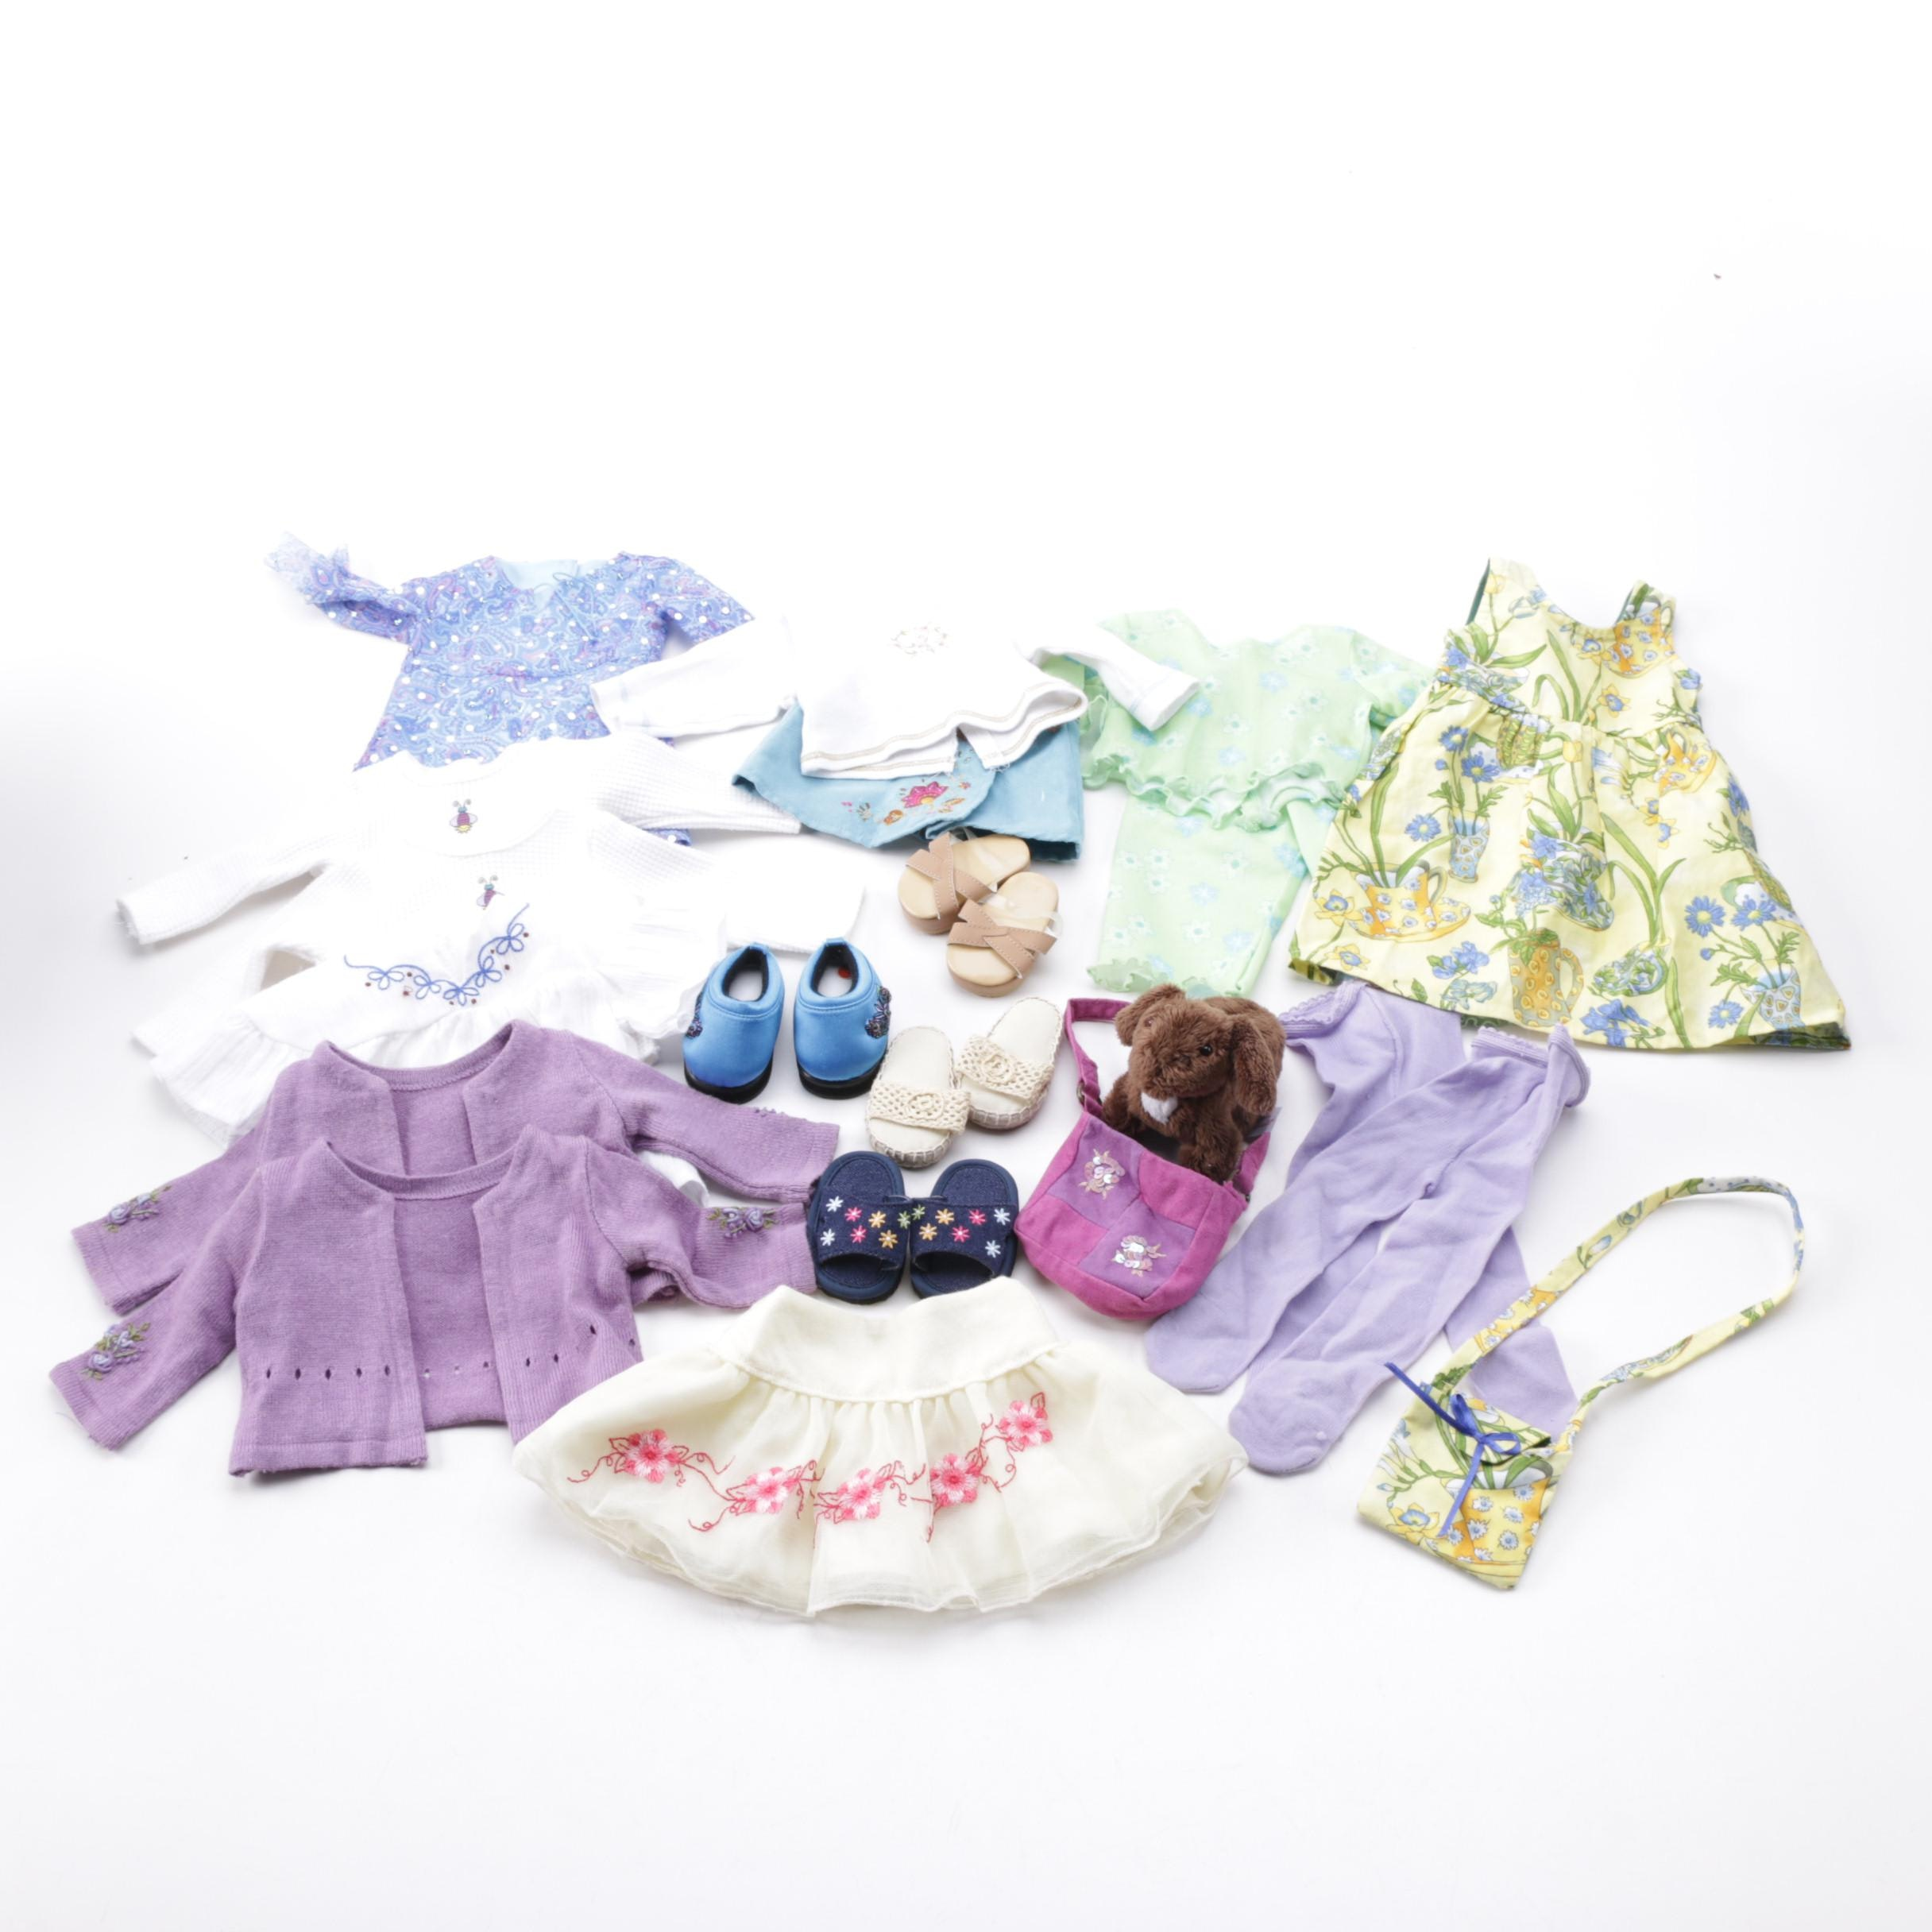 American Girl Doll Summery Clothing and Accessories